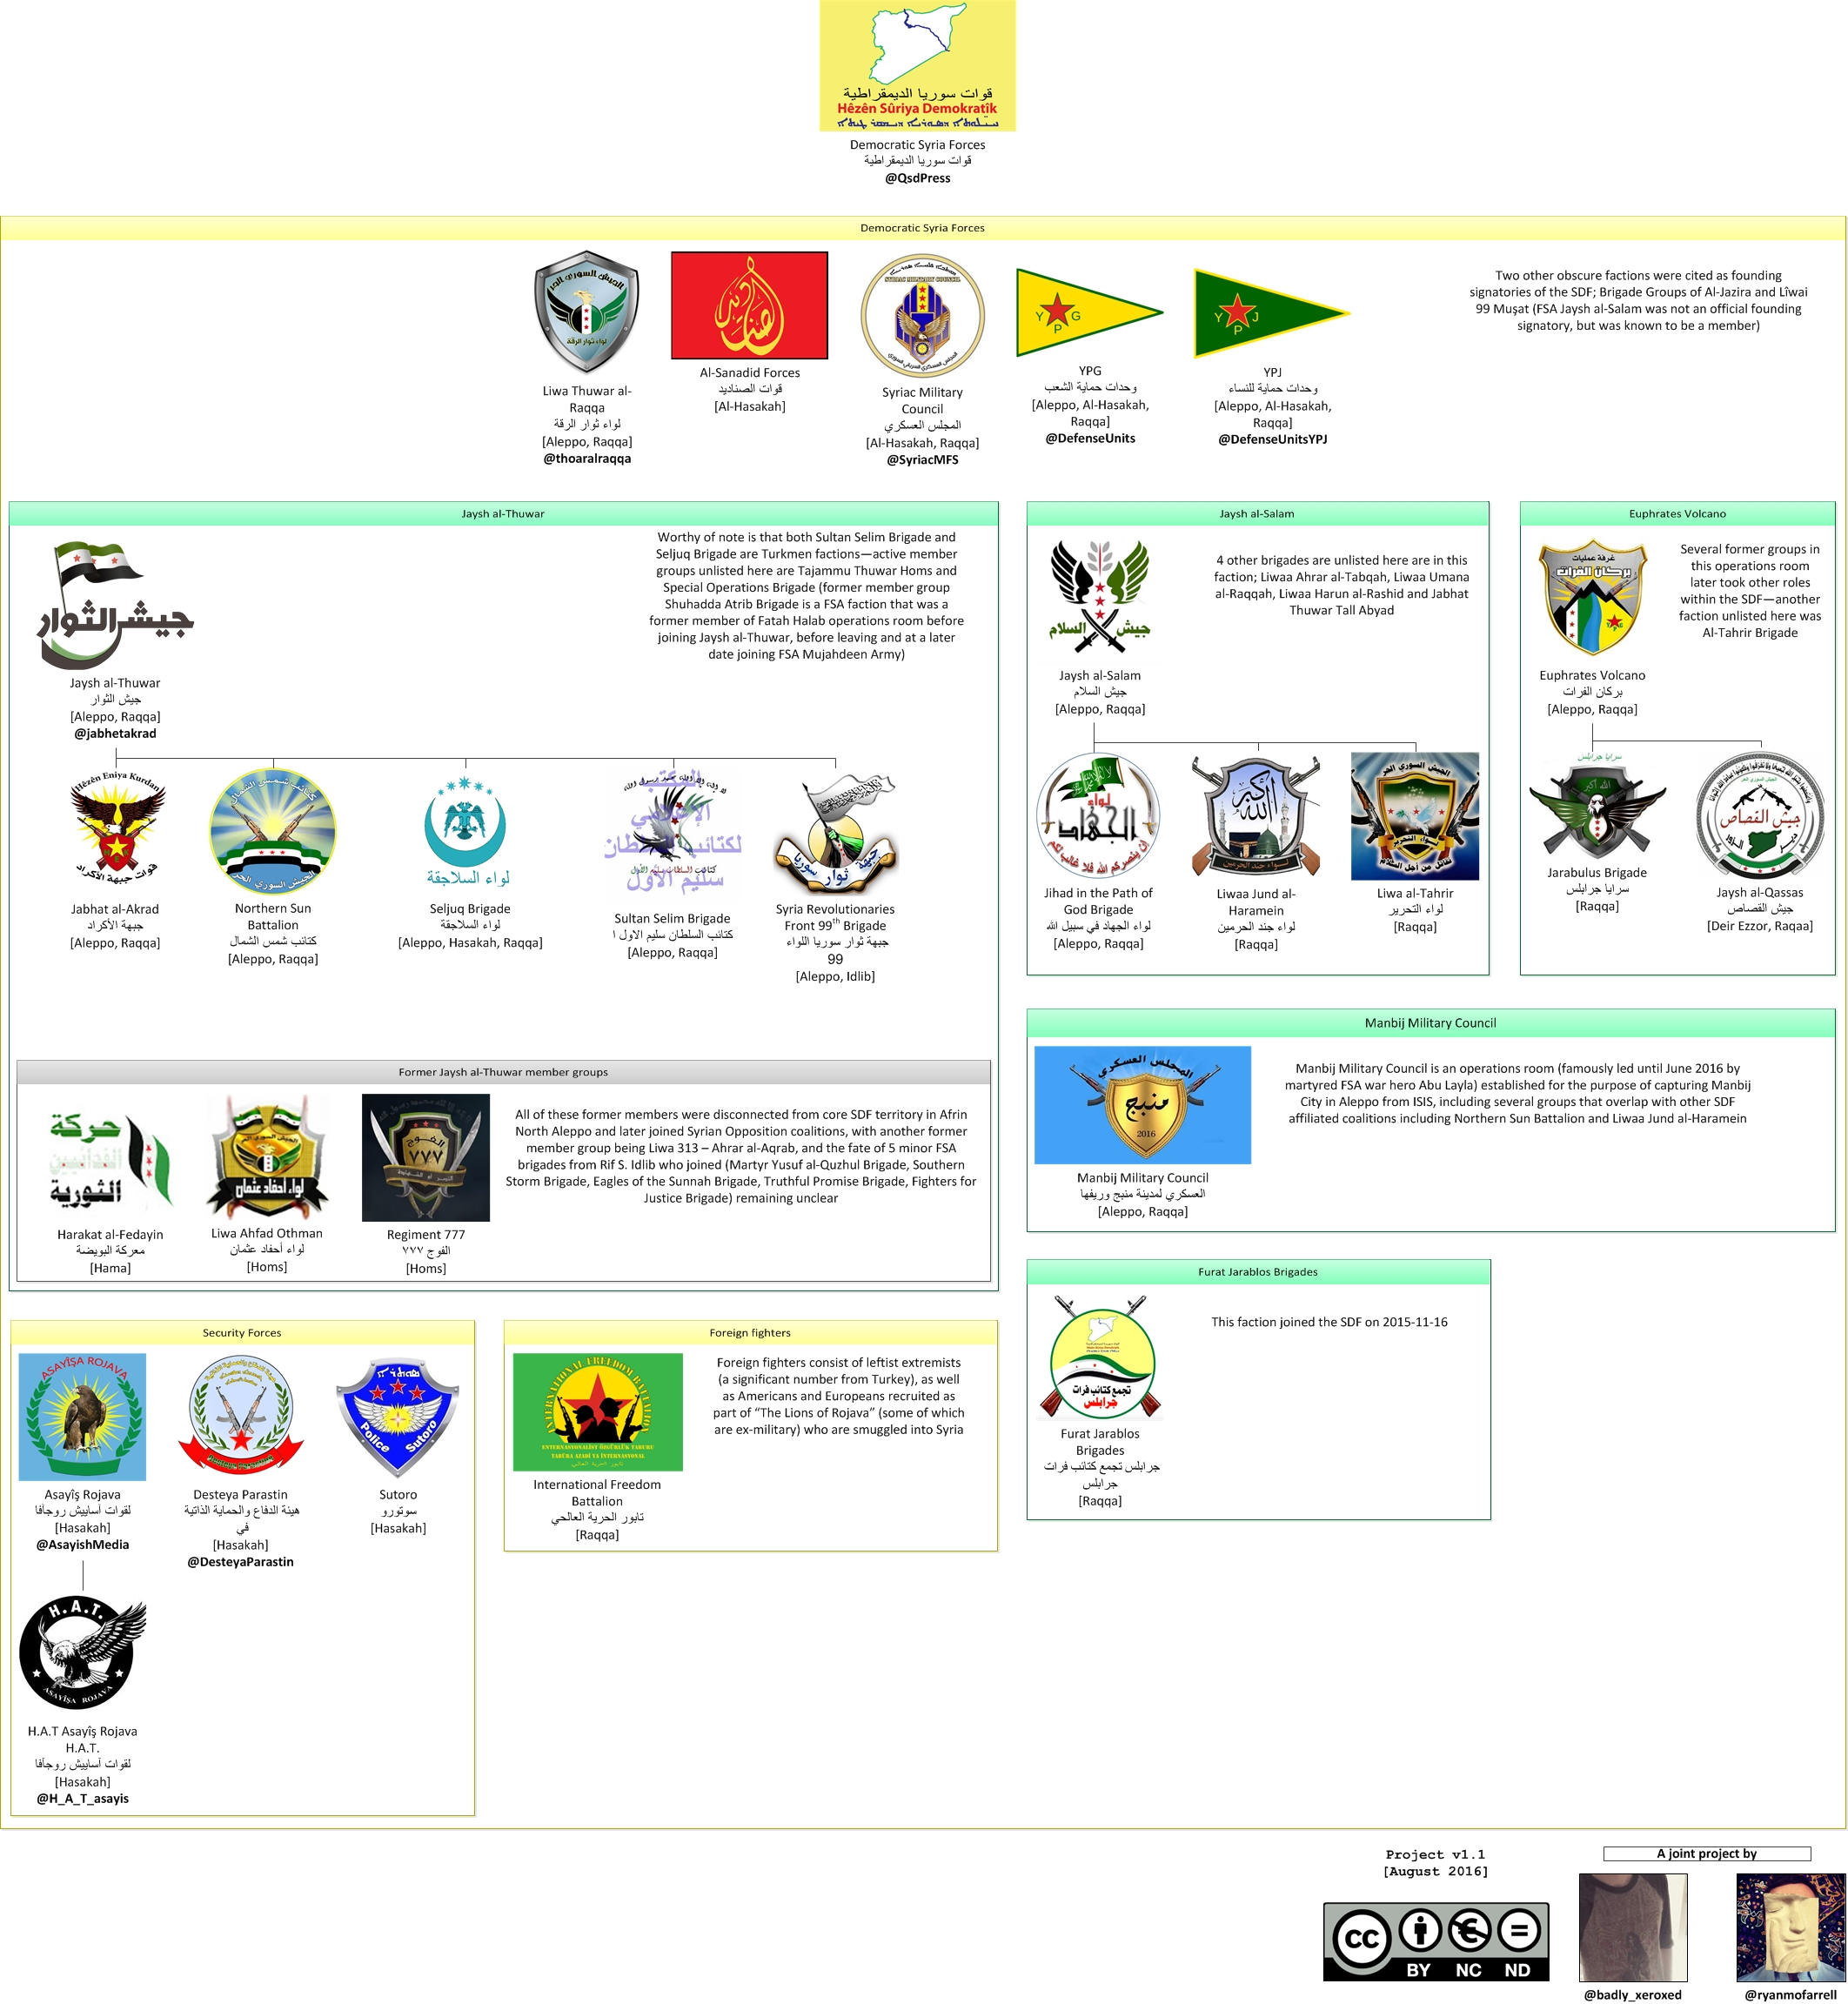 All identifiable current and former SDF factions